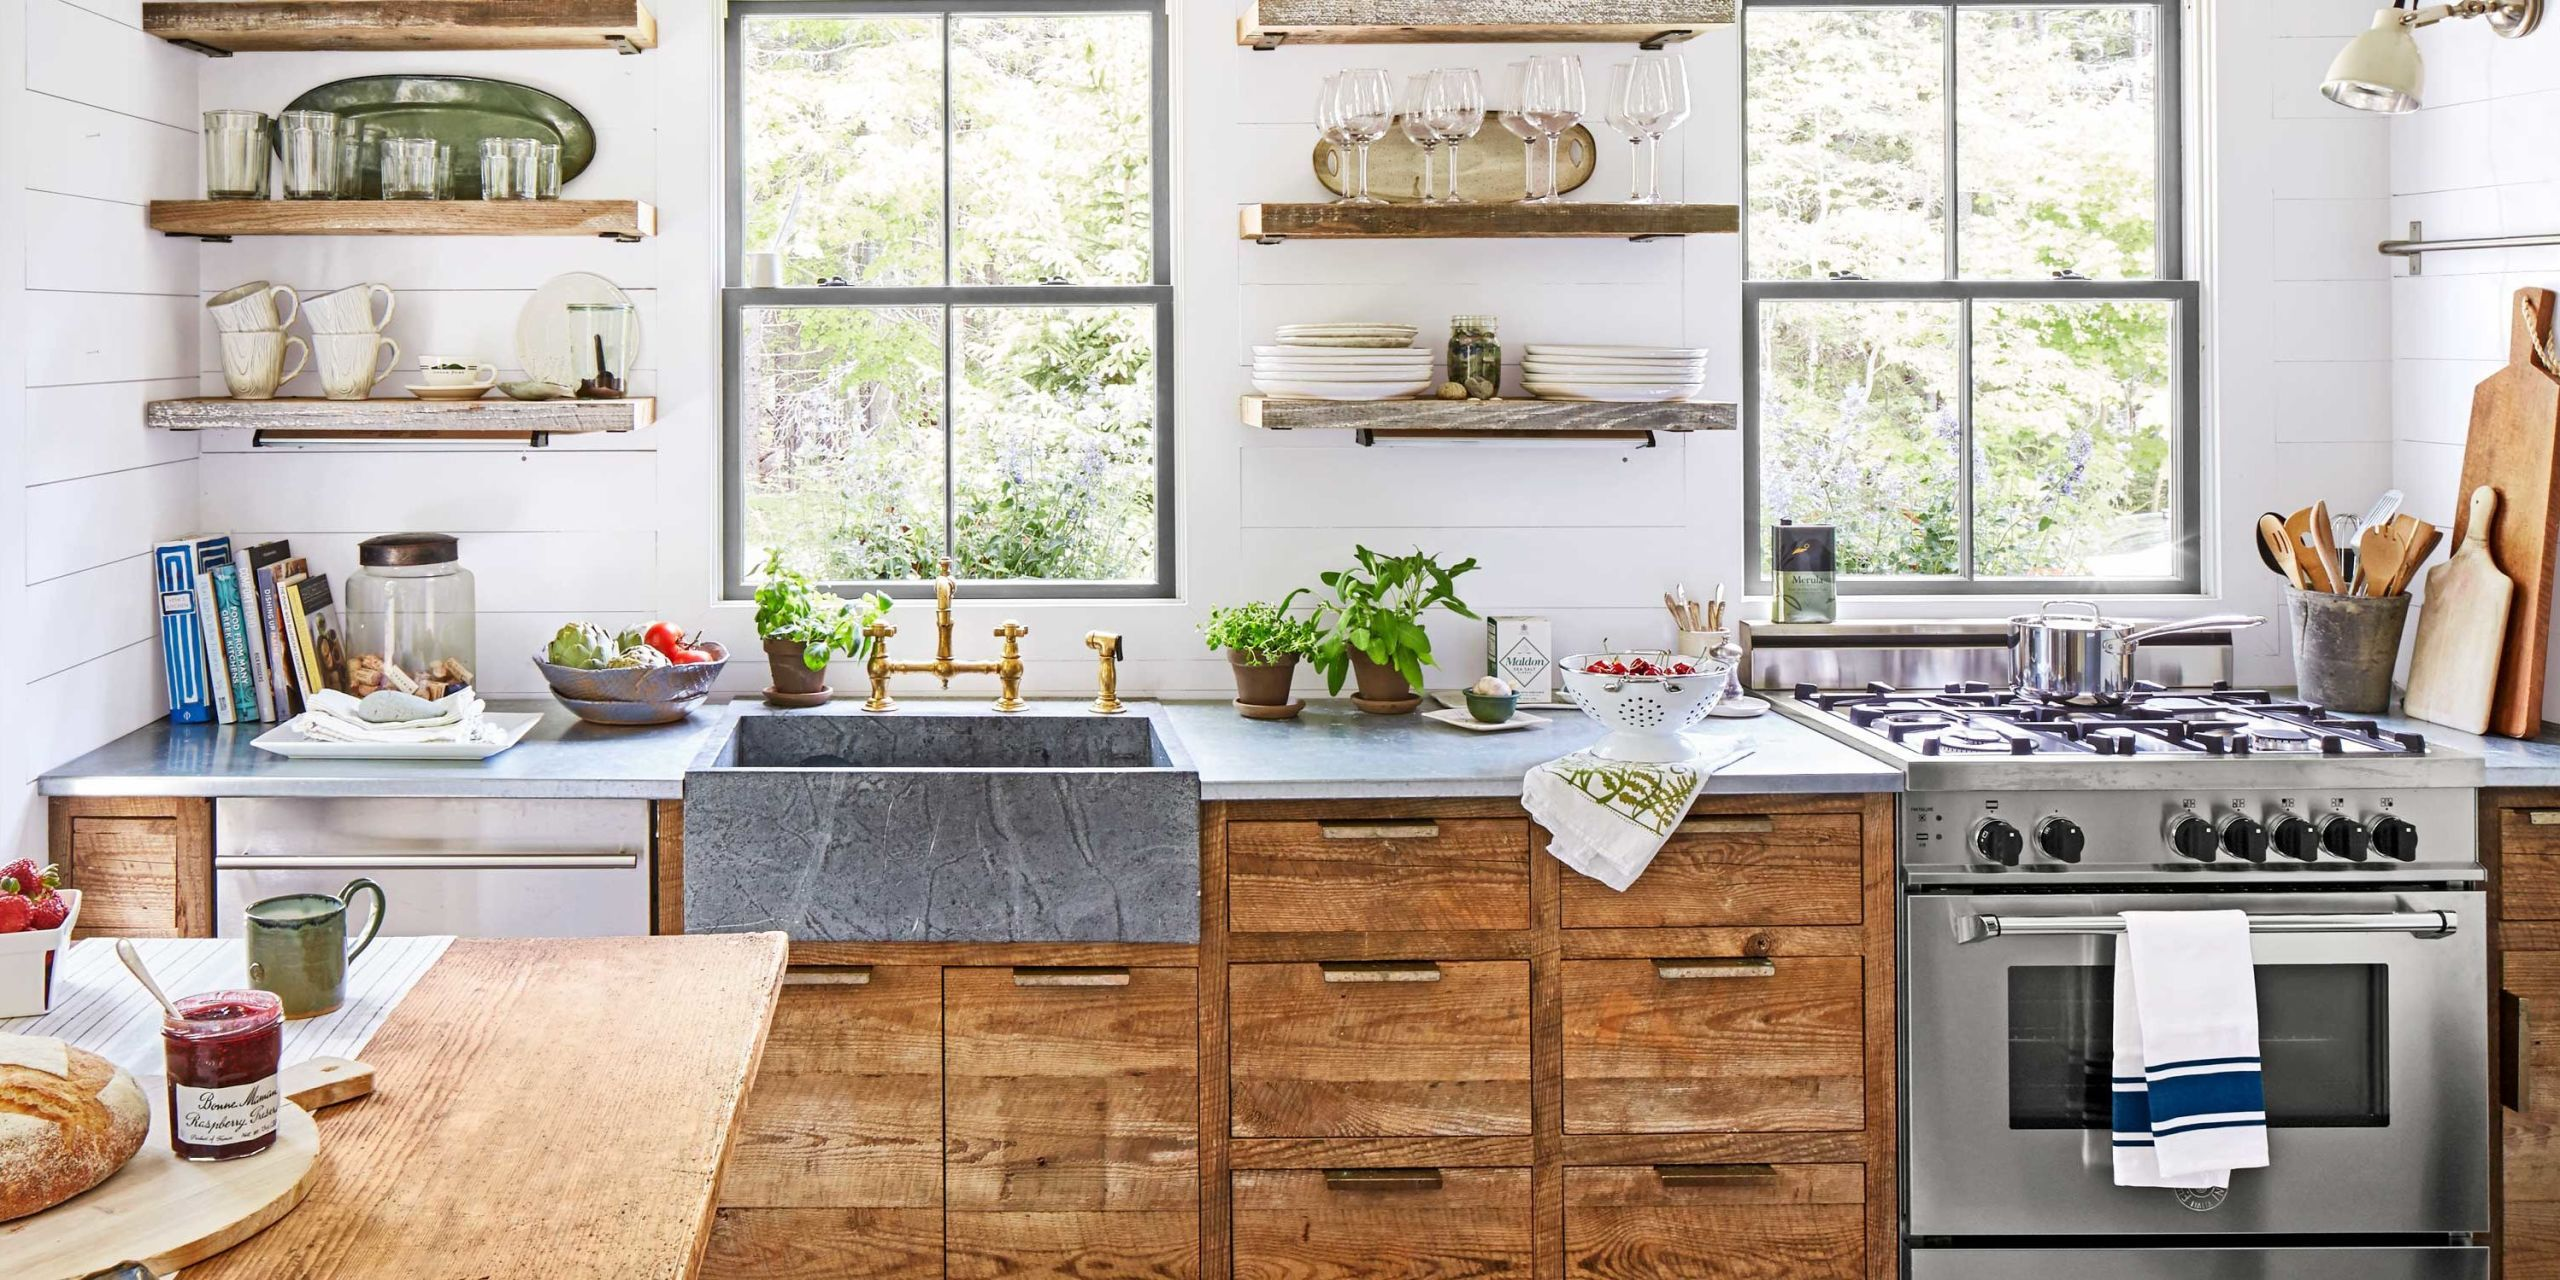 From Bold Design Choices To Affordable Appliances, Our Kitchen Decorating  Ideas And Inspiration Pictures Will Help Make This Everyoneu0027s Favorite Room  In The ...